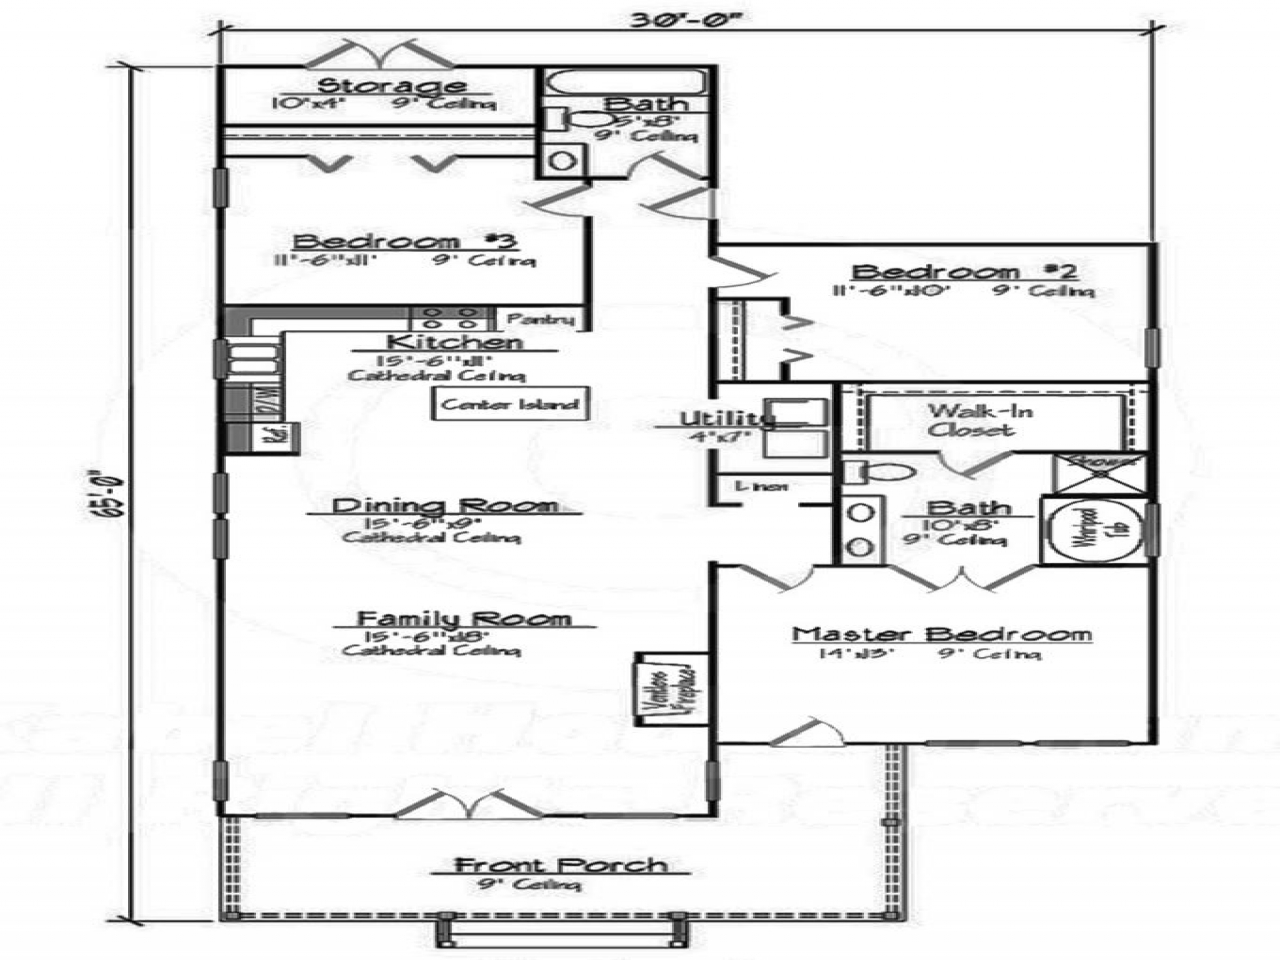 Small 3 Bedroom House Small 3 Bedroom House Floor Plans 2 Bedroom House Layouts